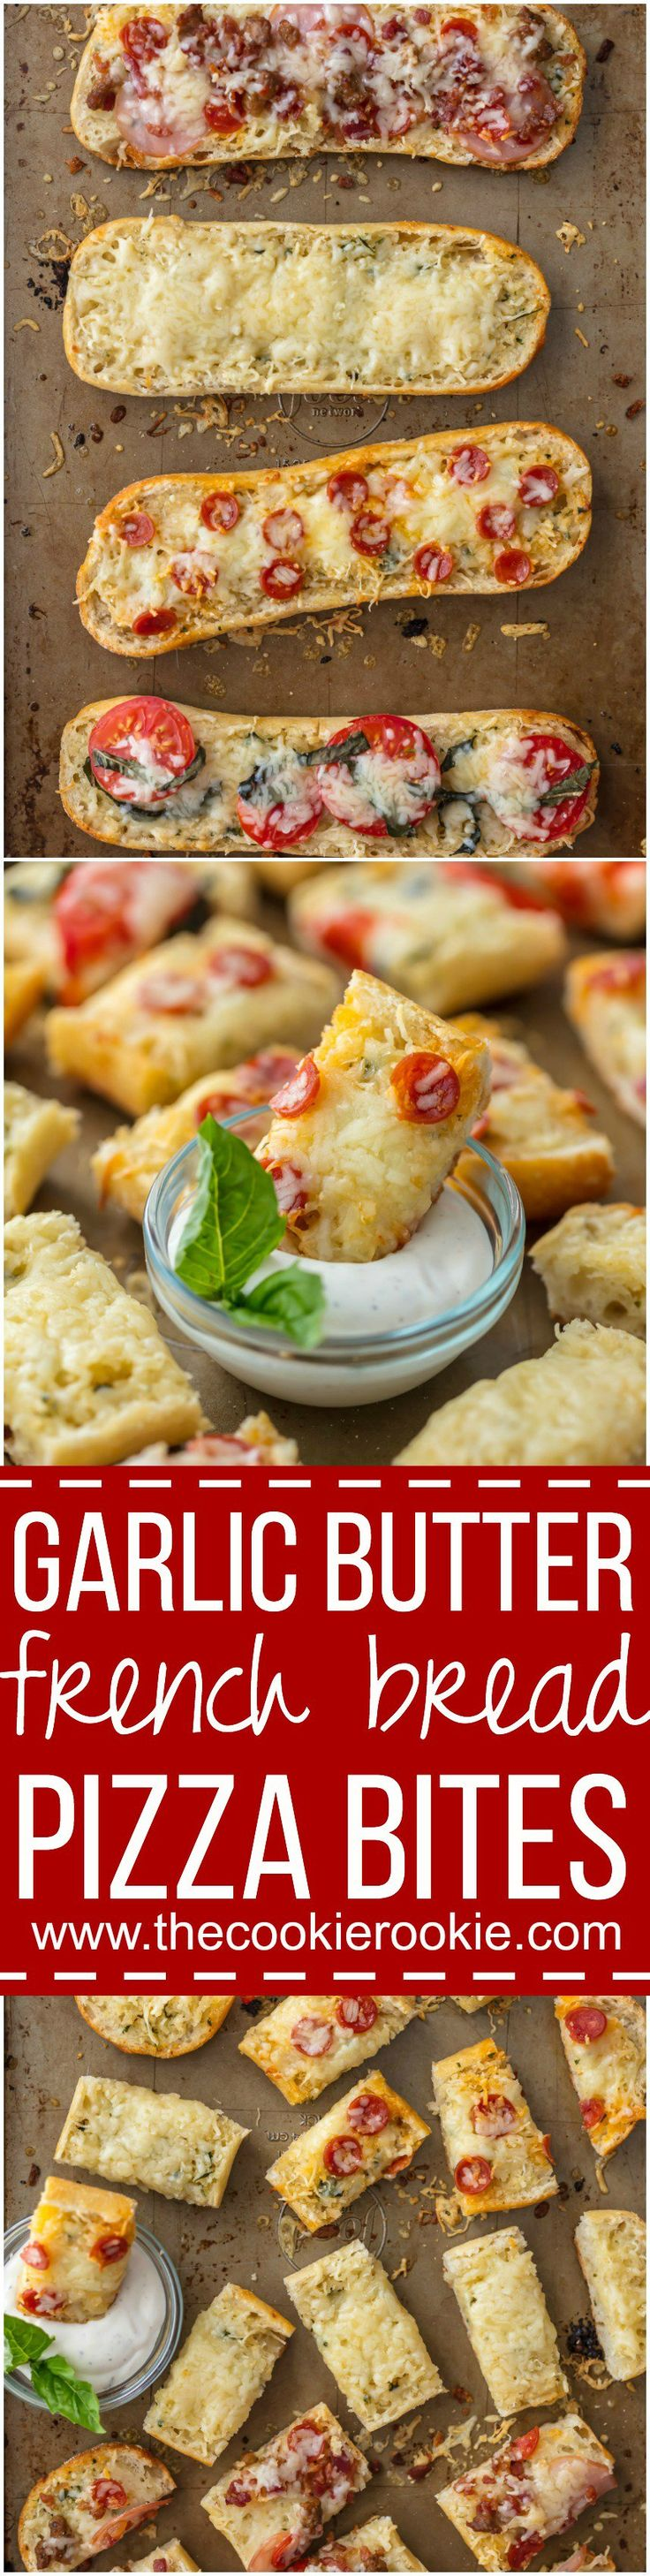 These GARLIC BUTTER FRENCH BREAD PIZZA BITES are the easiest and tastiest cheesy appetizer! Loaded with garlic butter, cheese, and all your favorite toppings! I say these are an appetizer, but we may just eat them as an entire meal! #ad @labreabakery @walmart